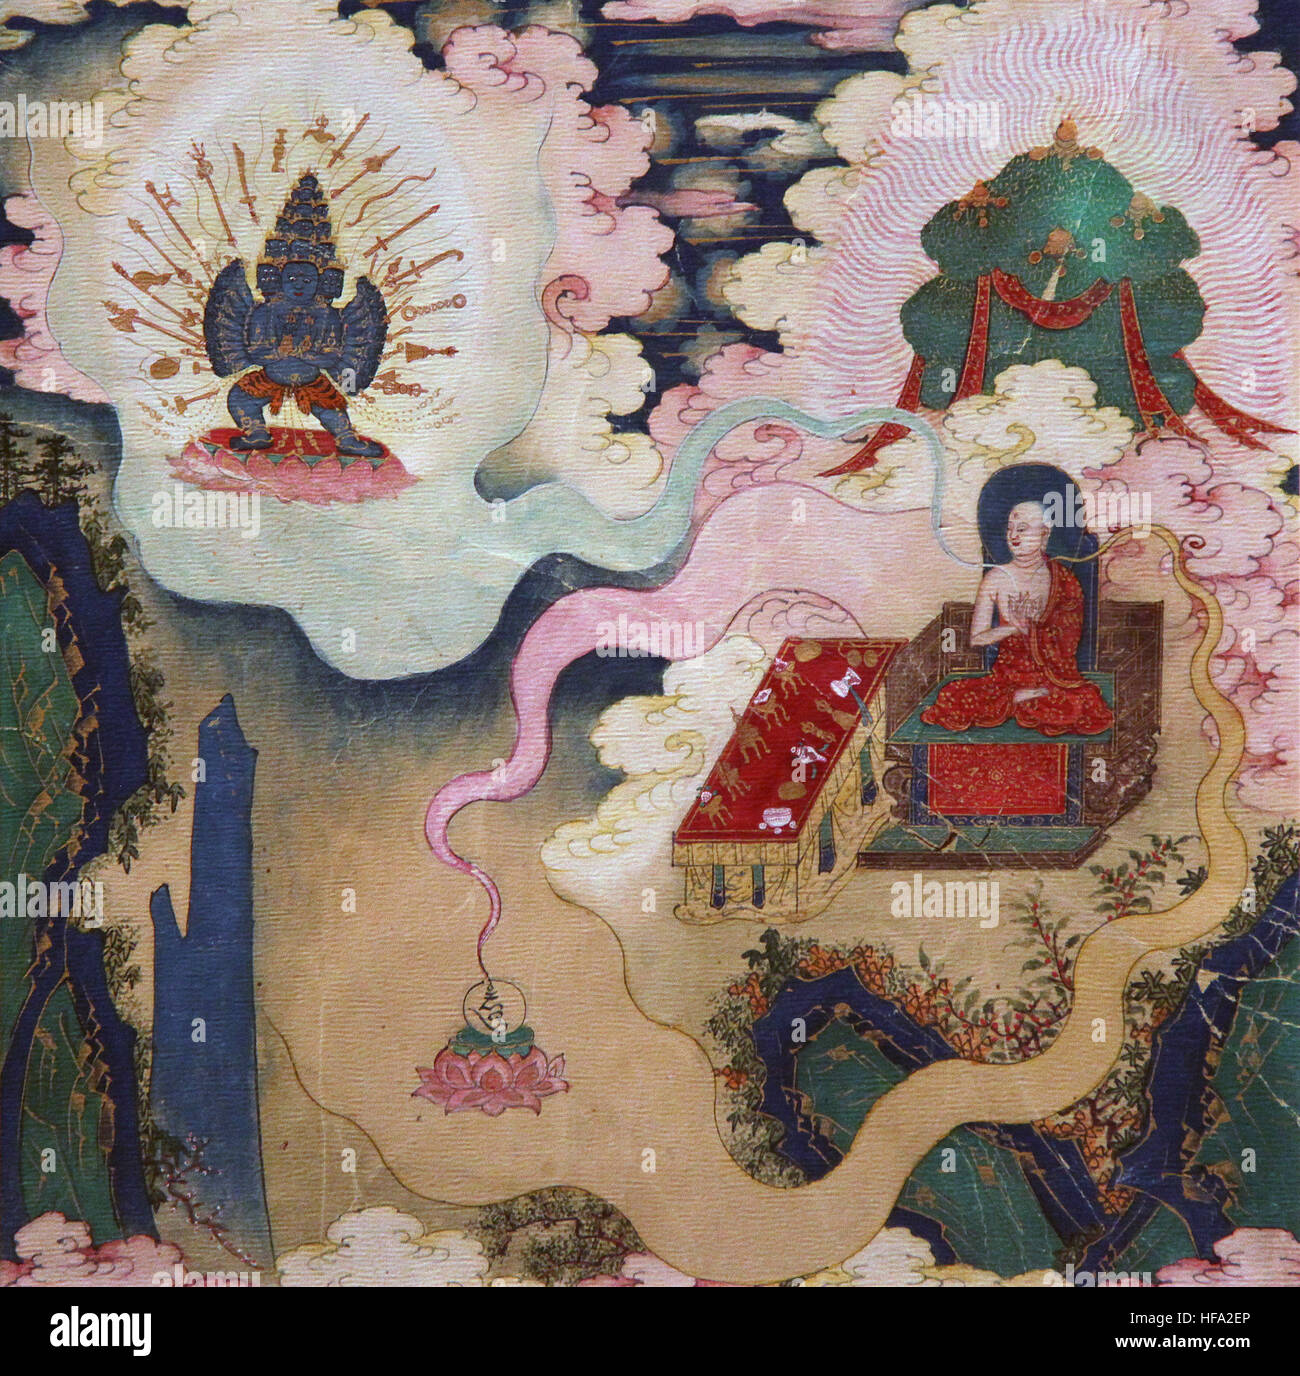 Buddhist tibetan vajrayana meditation painting 18th century buddha and mind yoga mindfulness Transformation - Stock Image